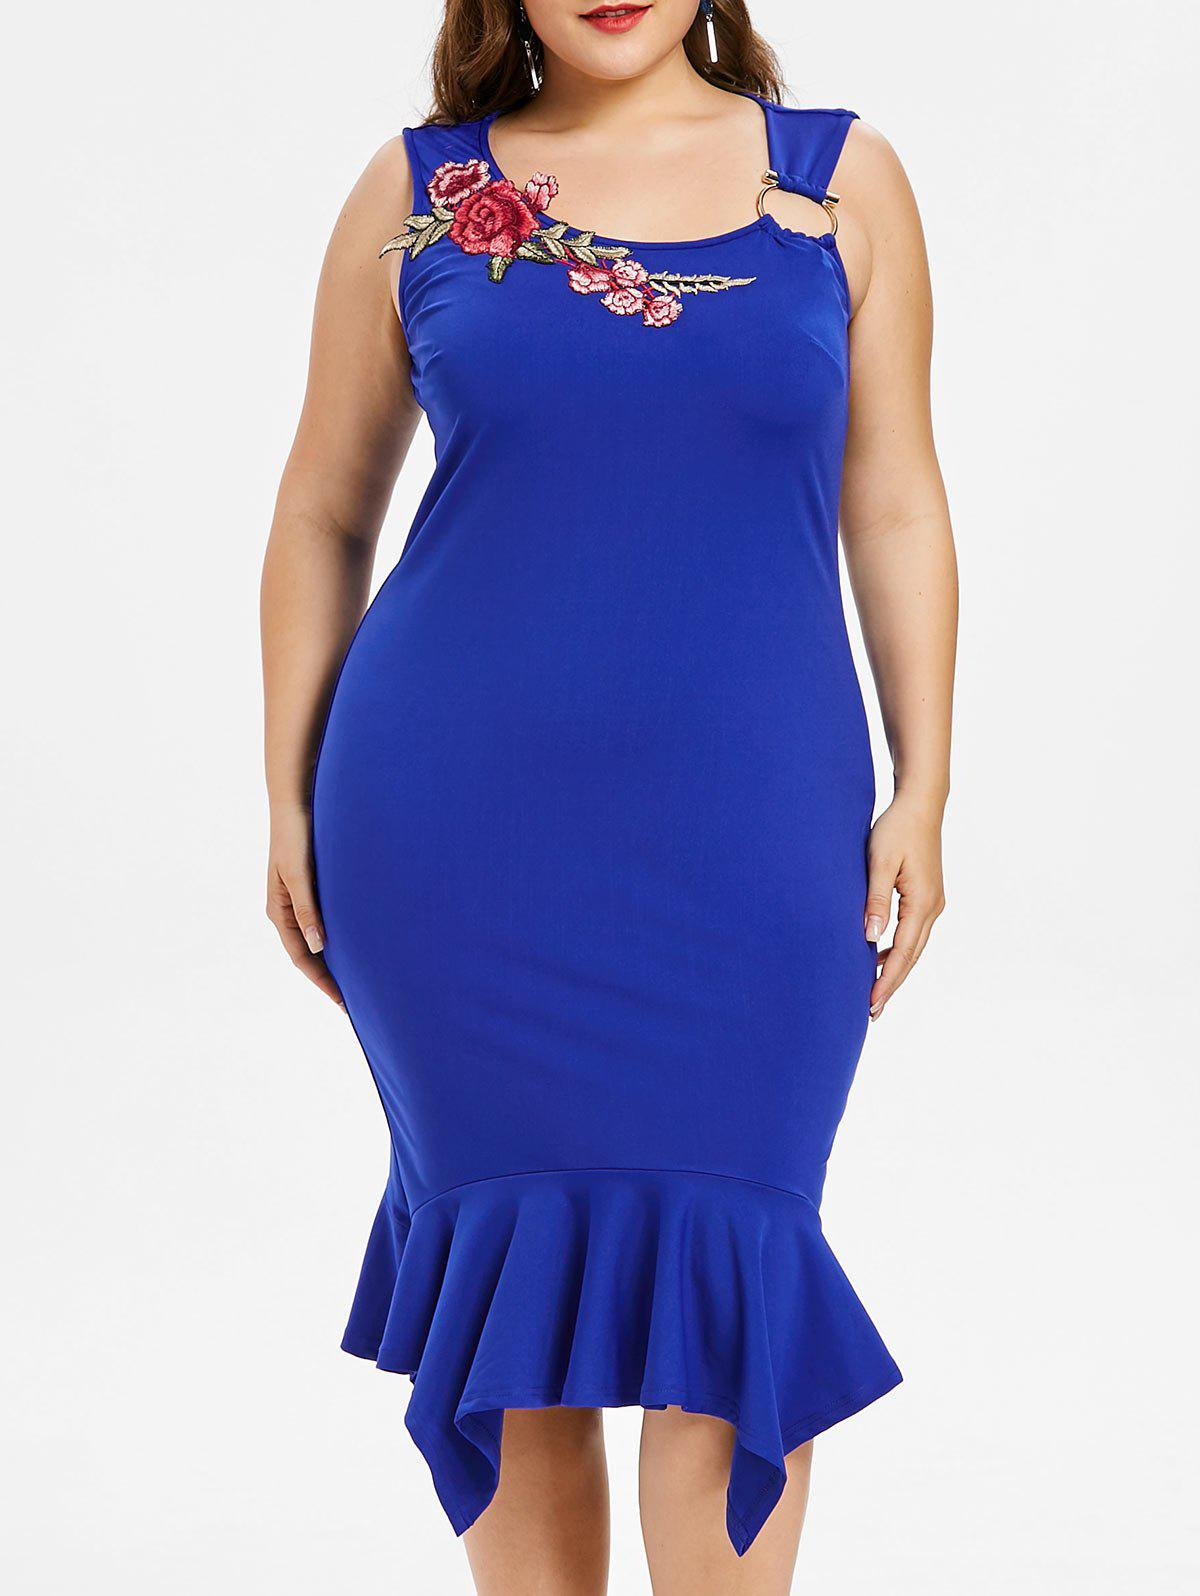 Fancy Plus Size Embroidery Handkerchief Fishtail Dress